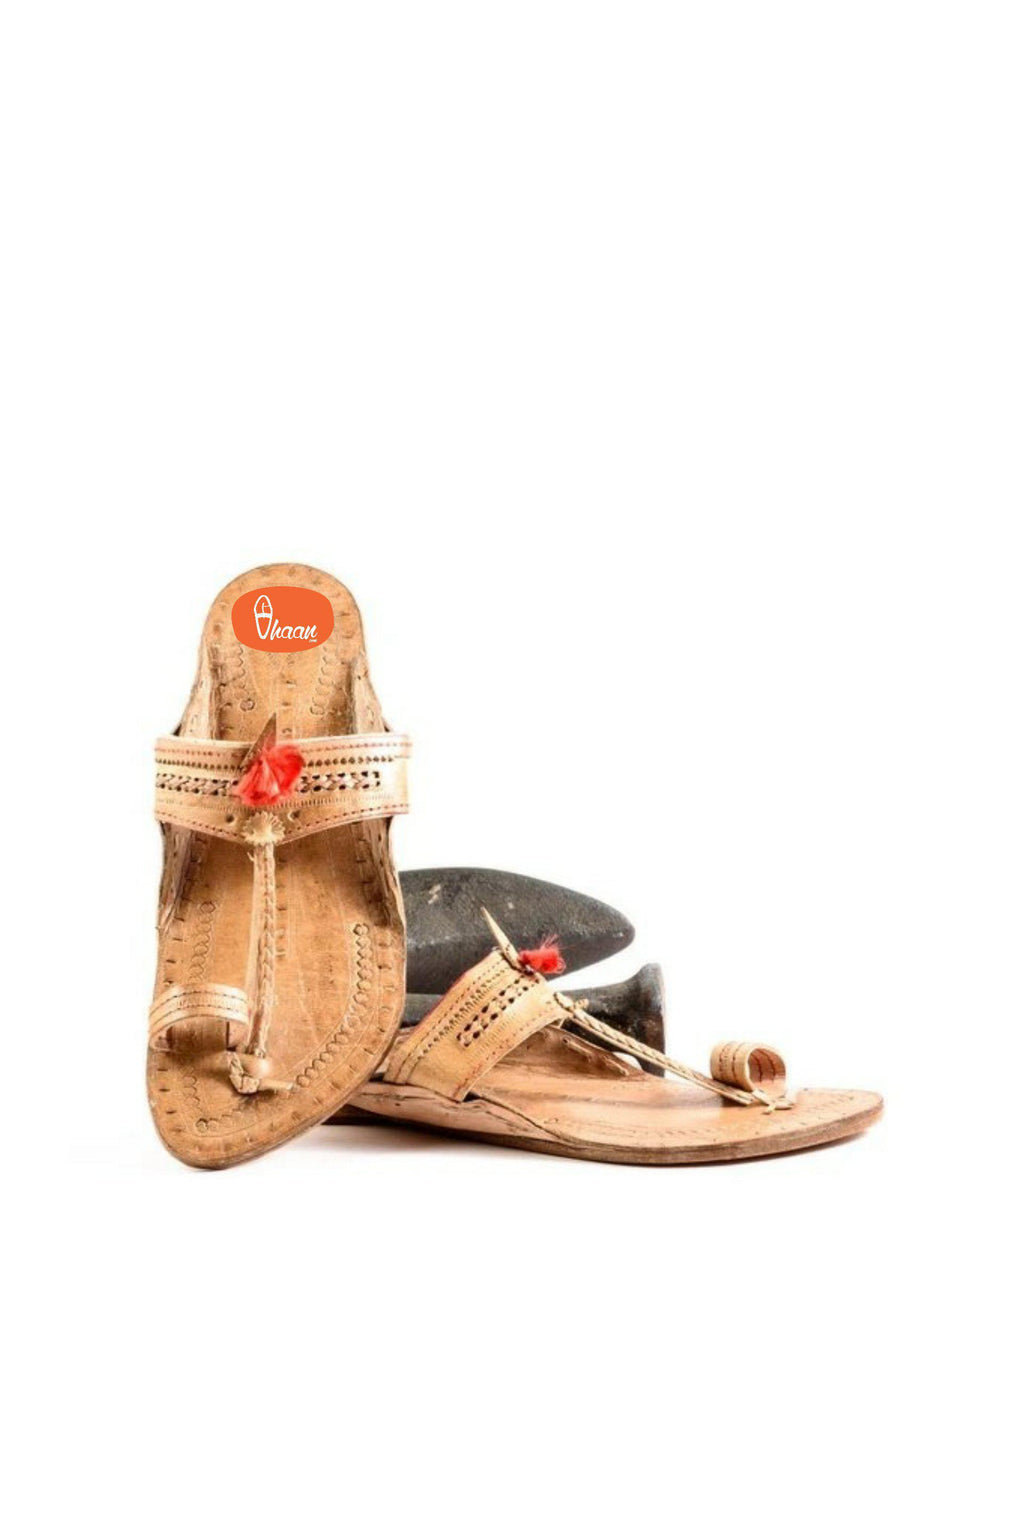 Purely Crafted Senapati Shape Red Gonda 4 Veni Belt Handcrafted Kolhapuri chappal for women